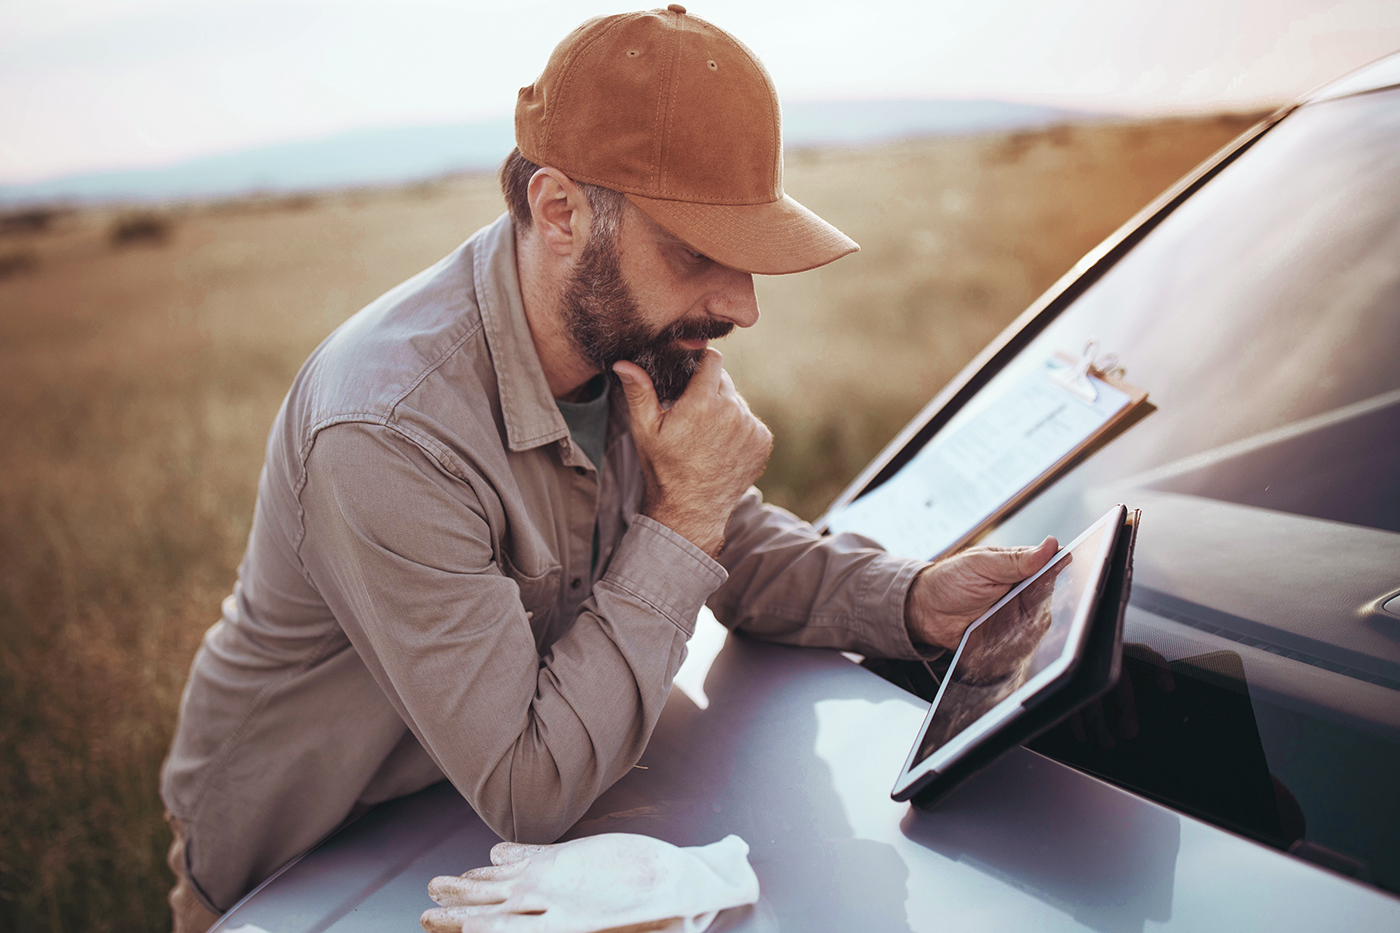 man using tablet next to truck